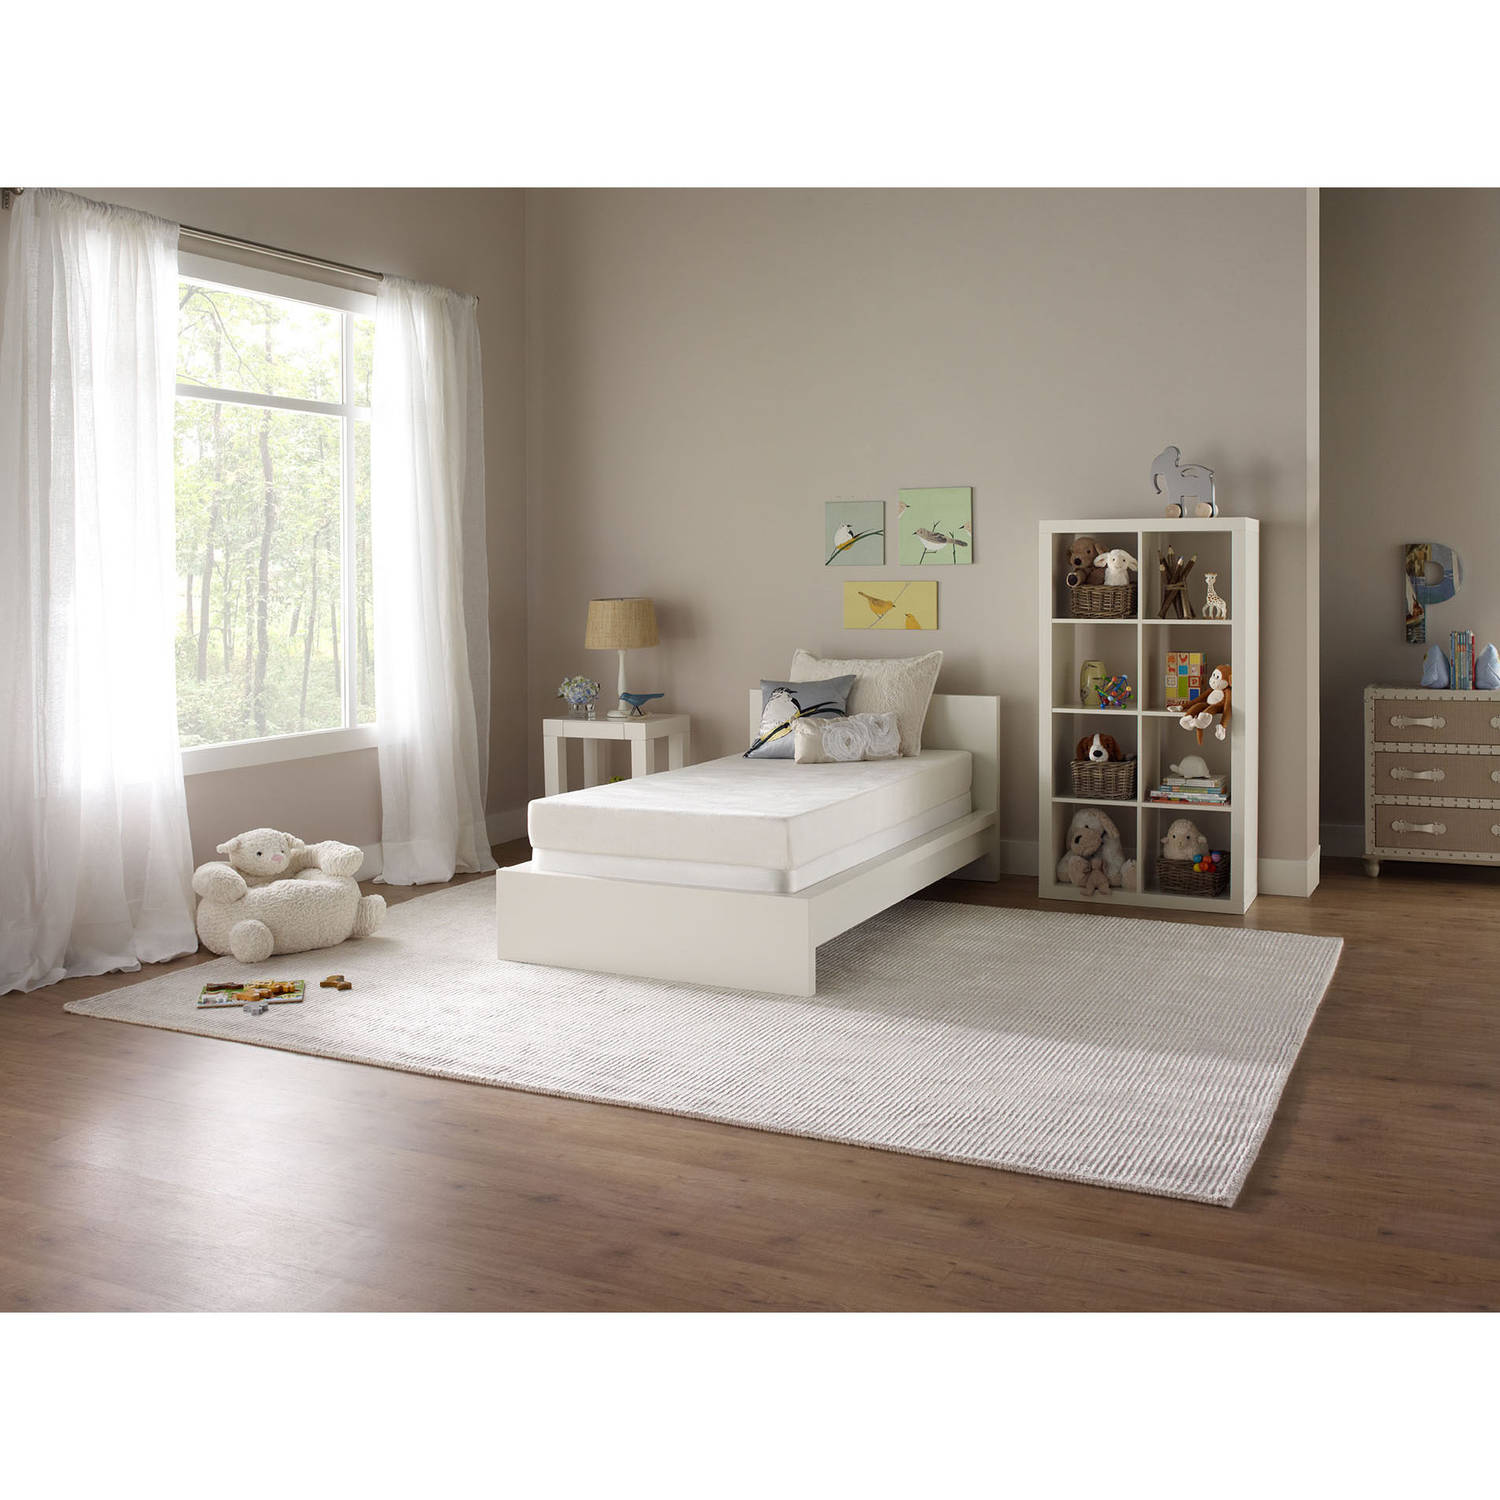 "Simmons Studio 6"" Foam Mattress, Multiple Sizes"